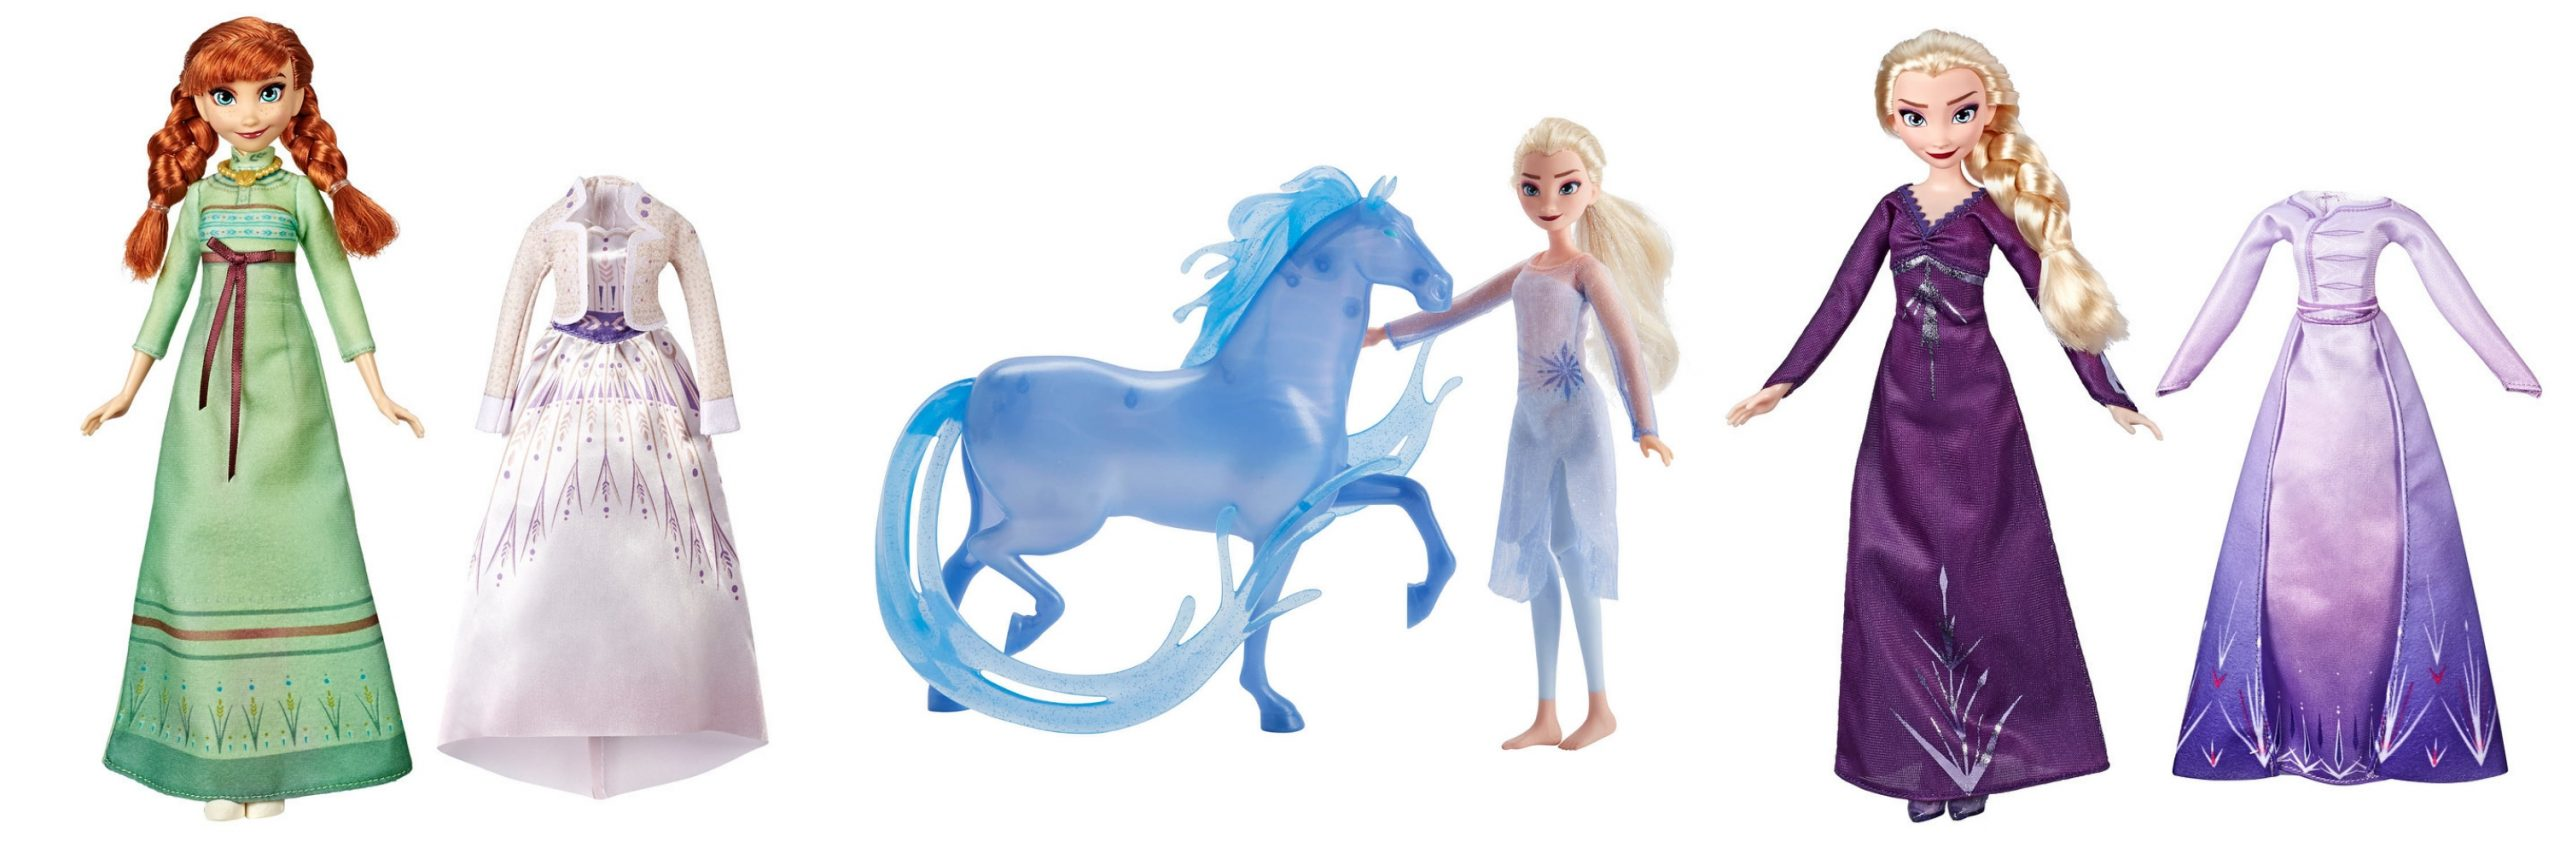 Looking for the best Frozen 2 toys? These dolls are AMAZING!